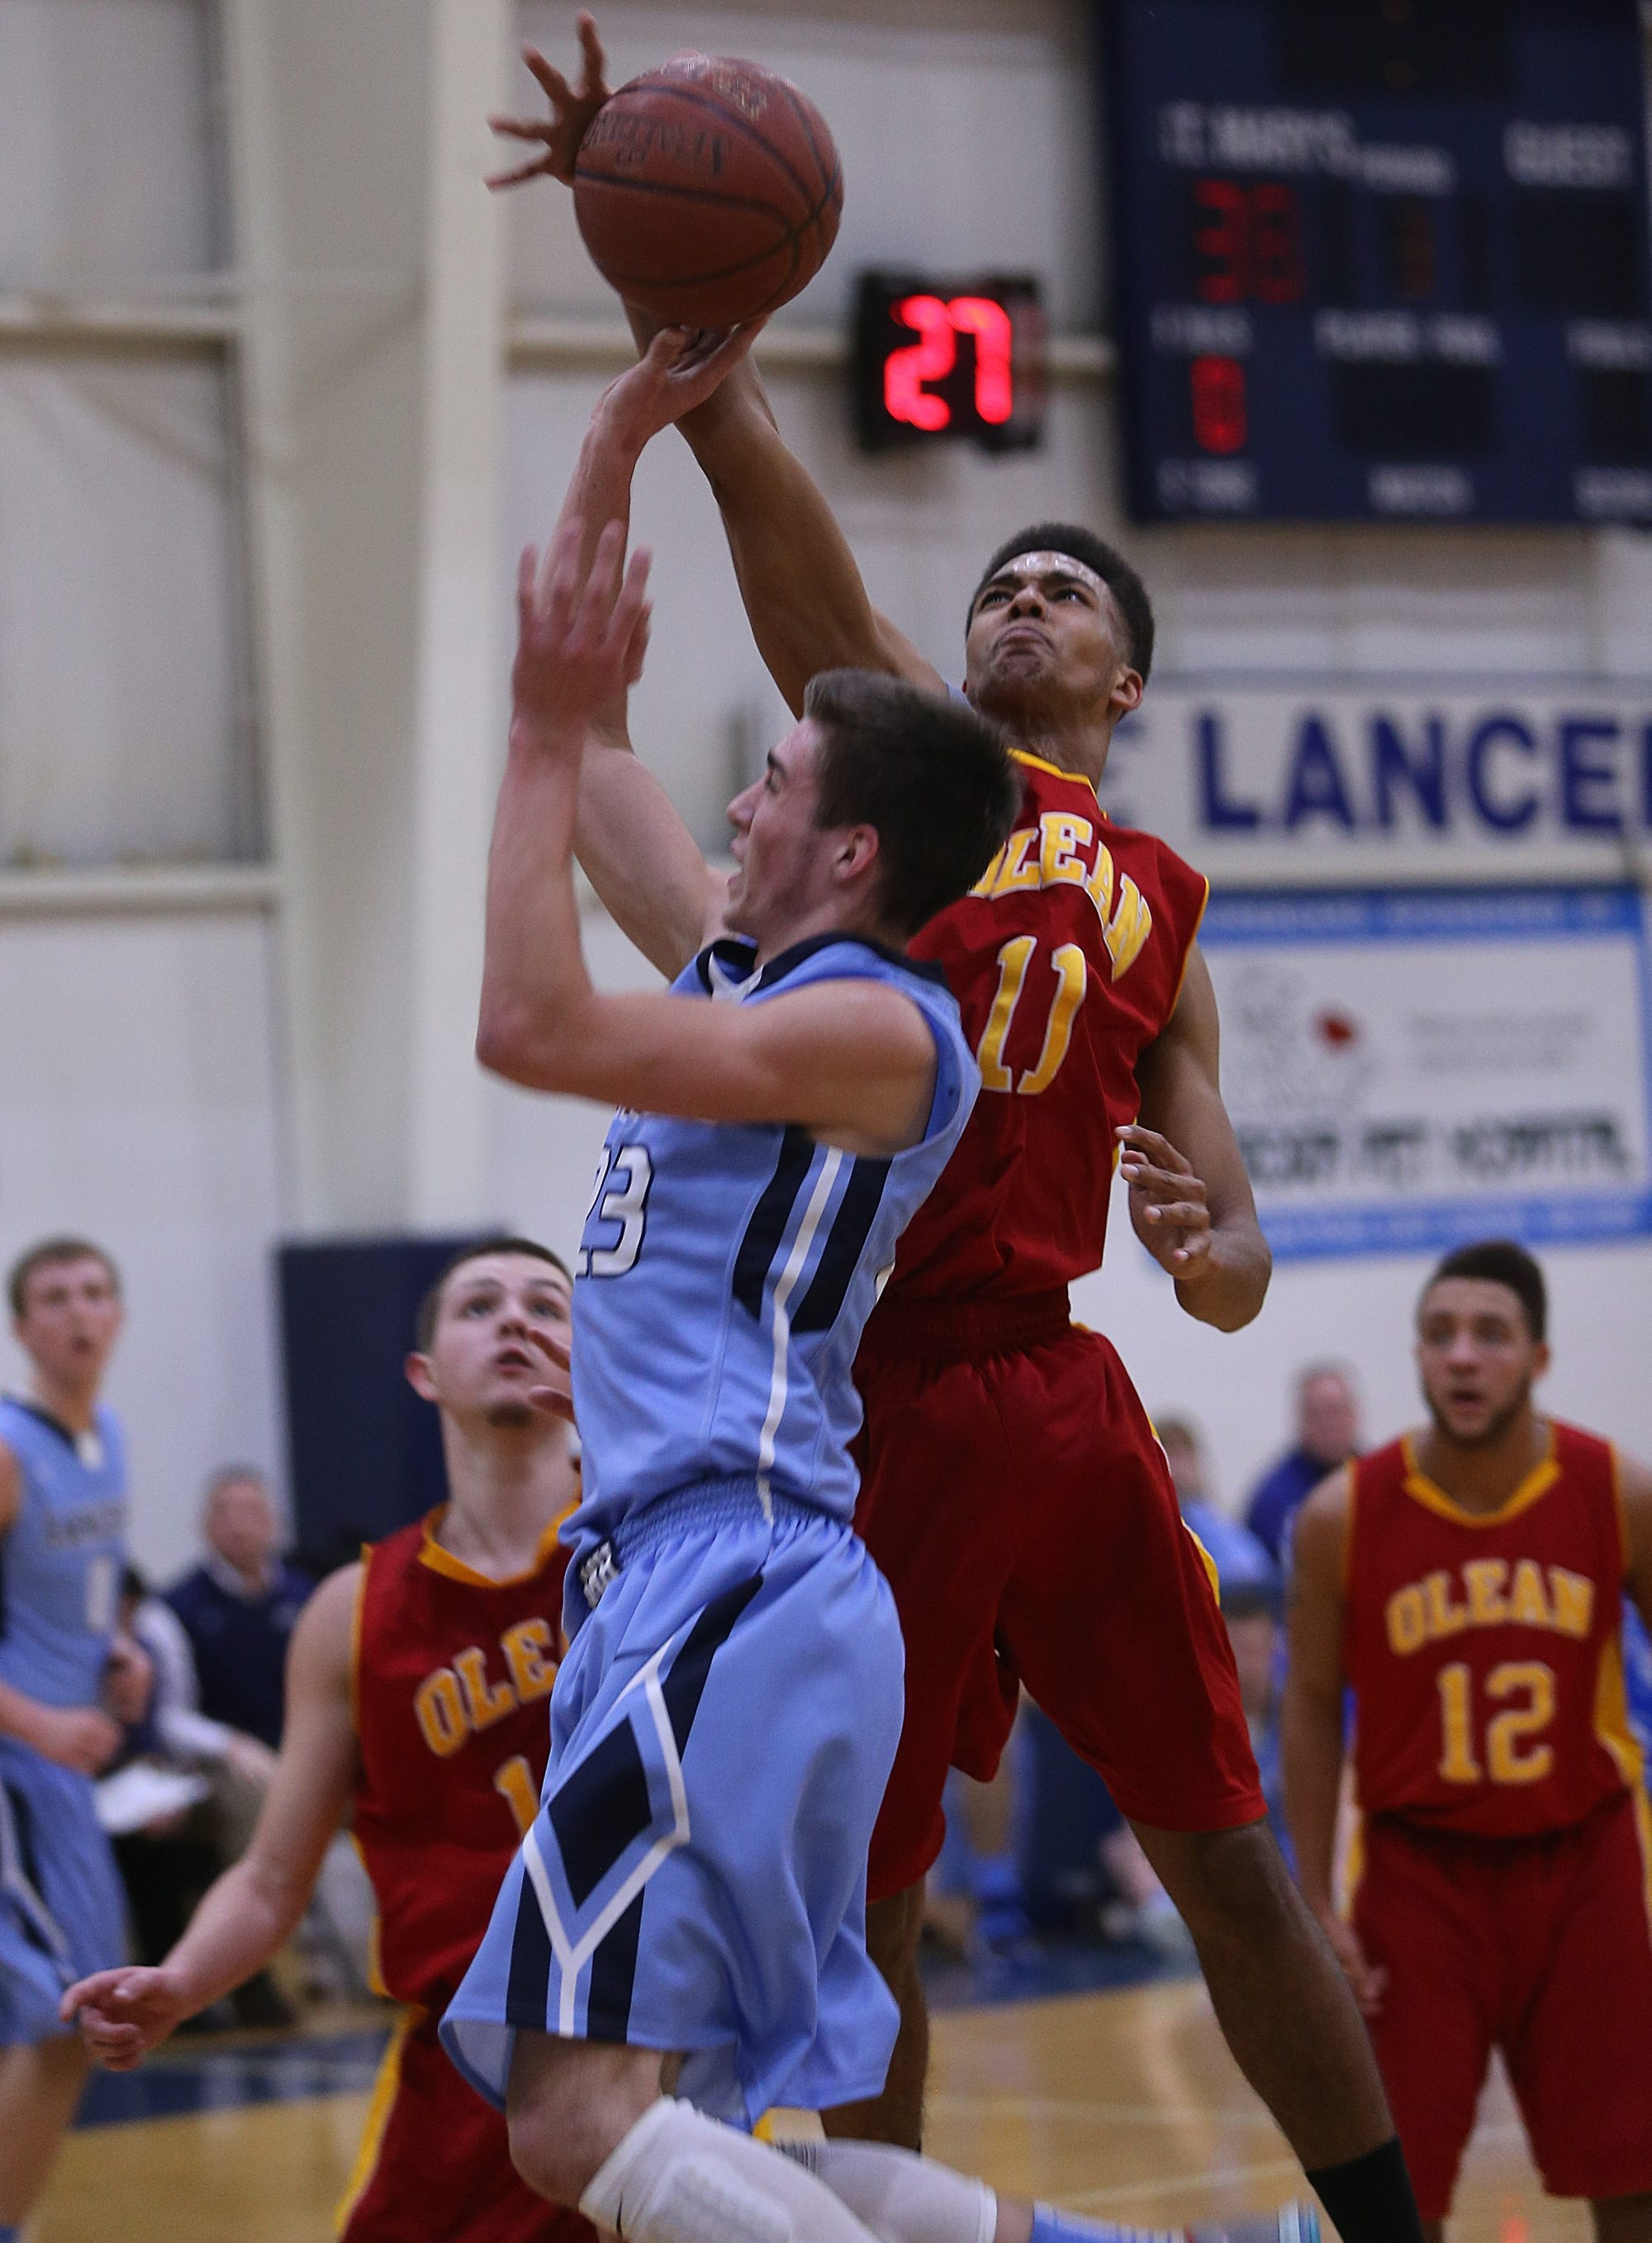 Tyler English (23) of St. Mary's gets his shot knocked away by Olean's Wil Bathurst during Tuesday's game in Lancaster.